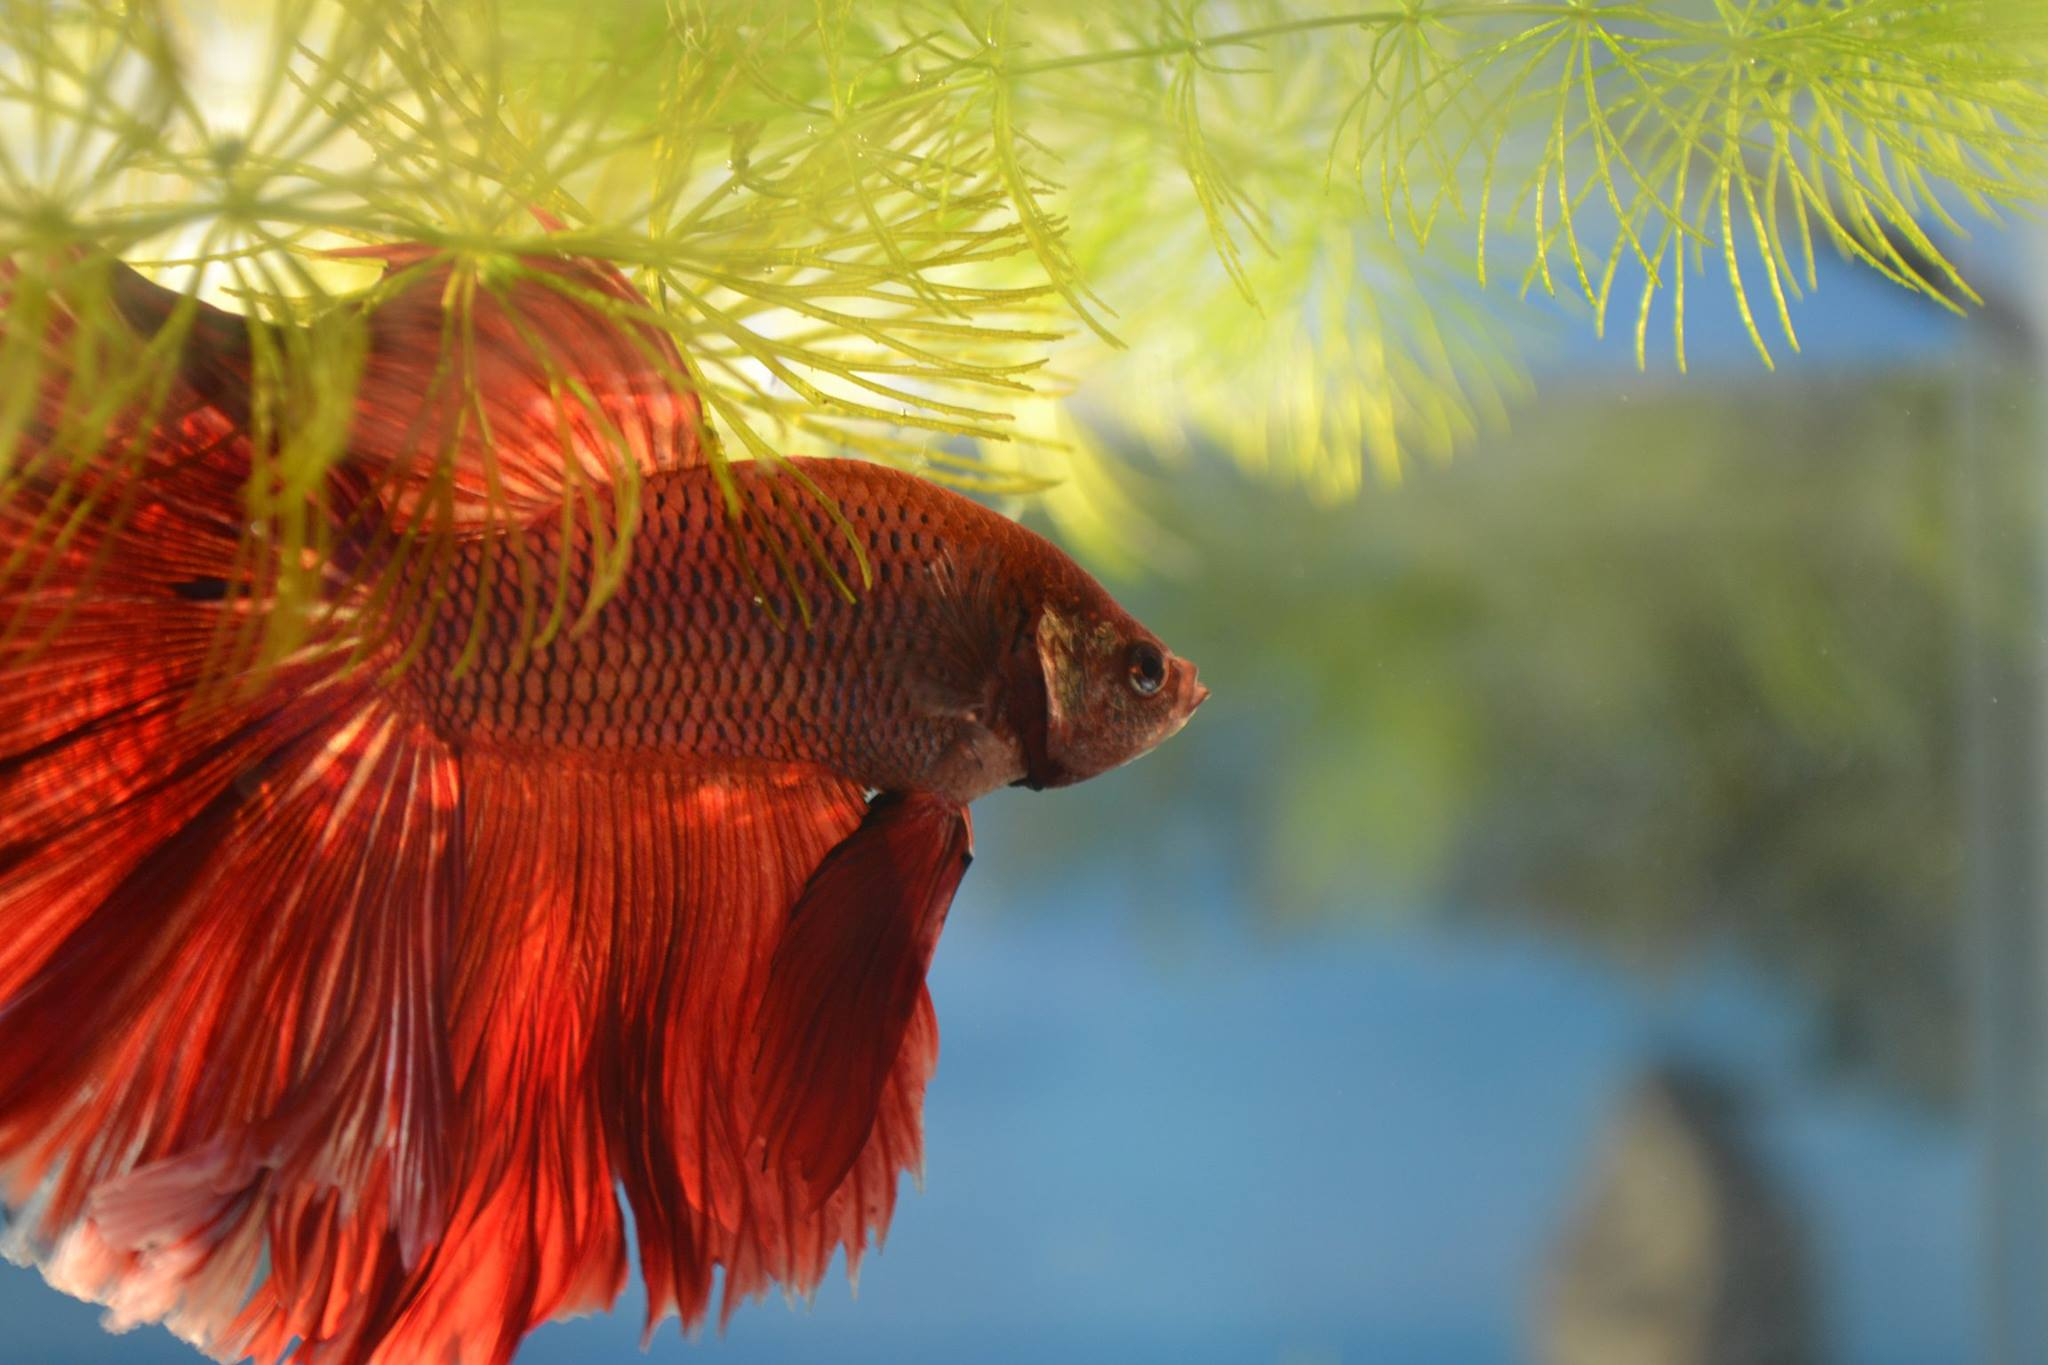 Red HM Betta